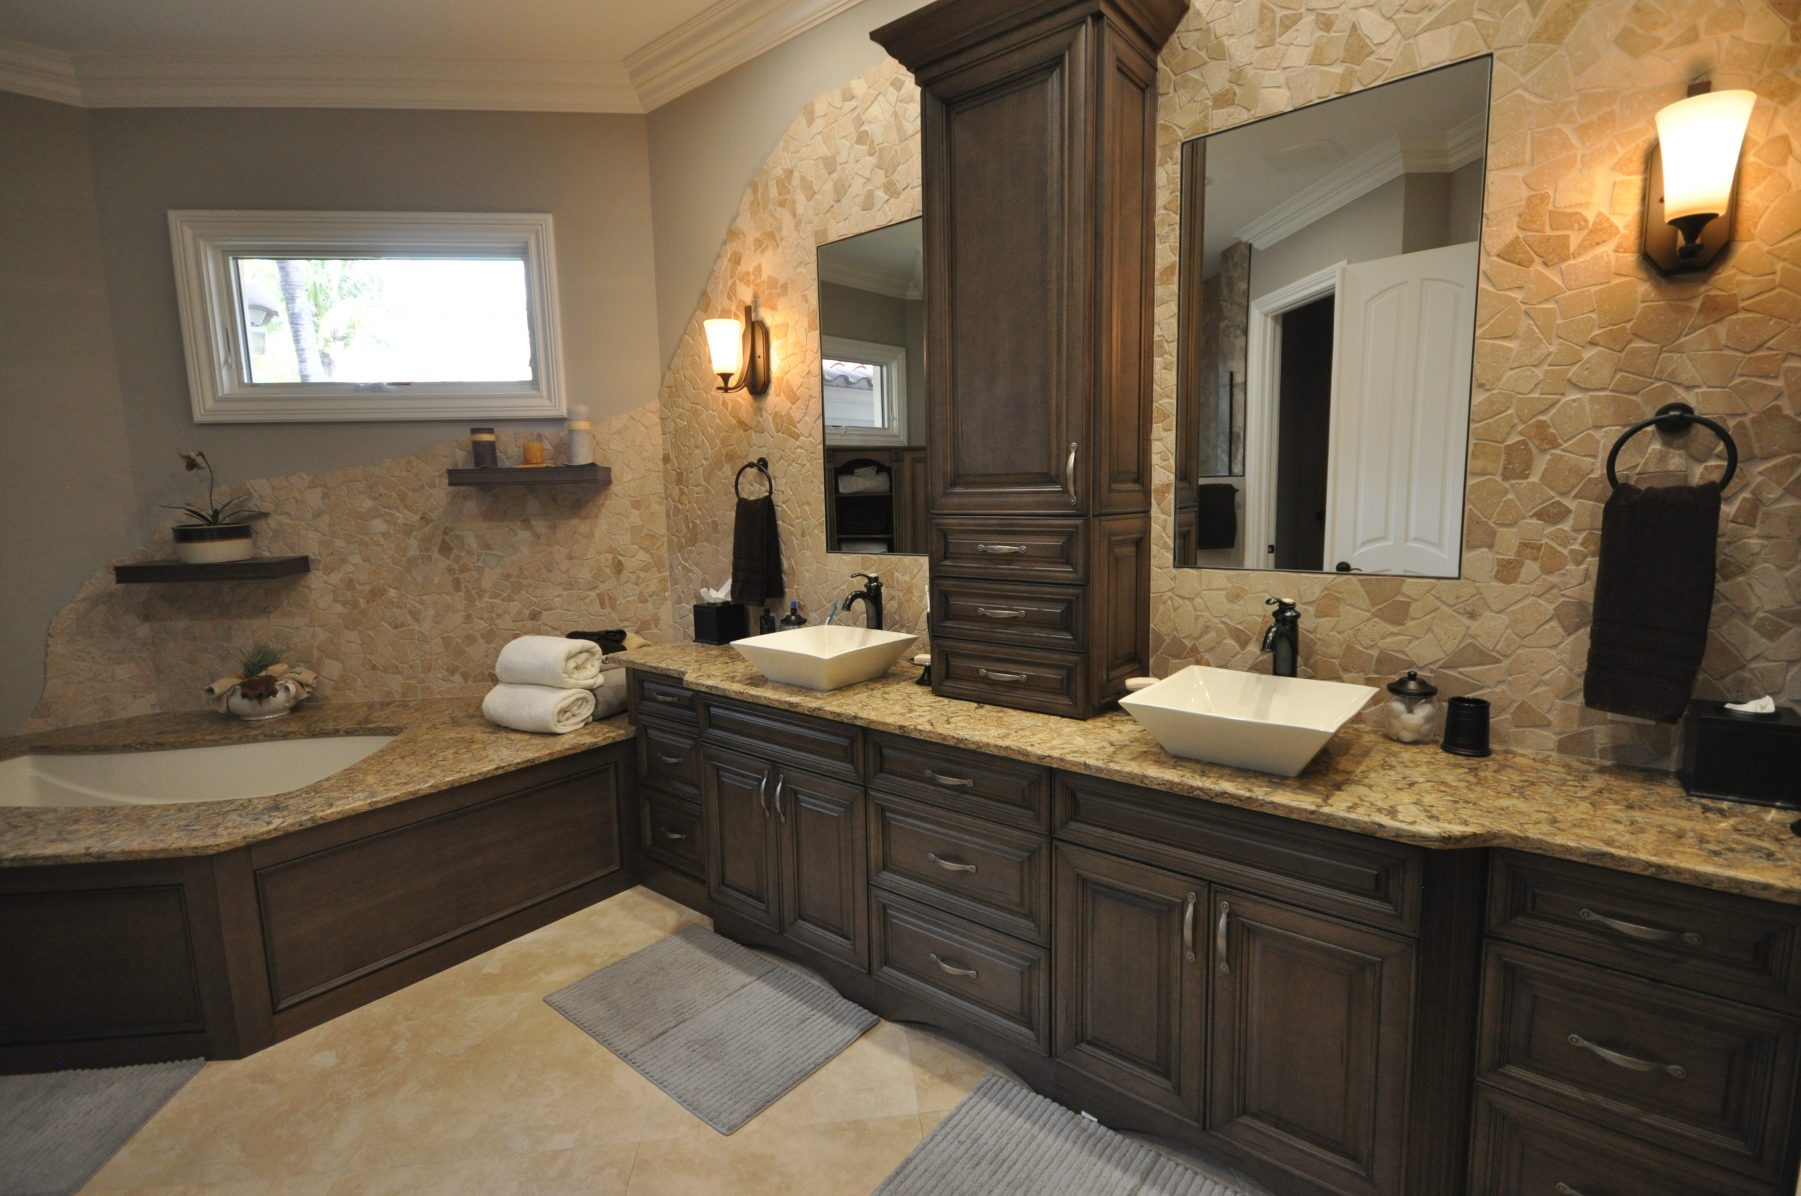 Naples Bathroom Remodeling - Kozy